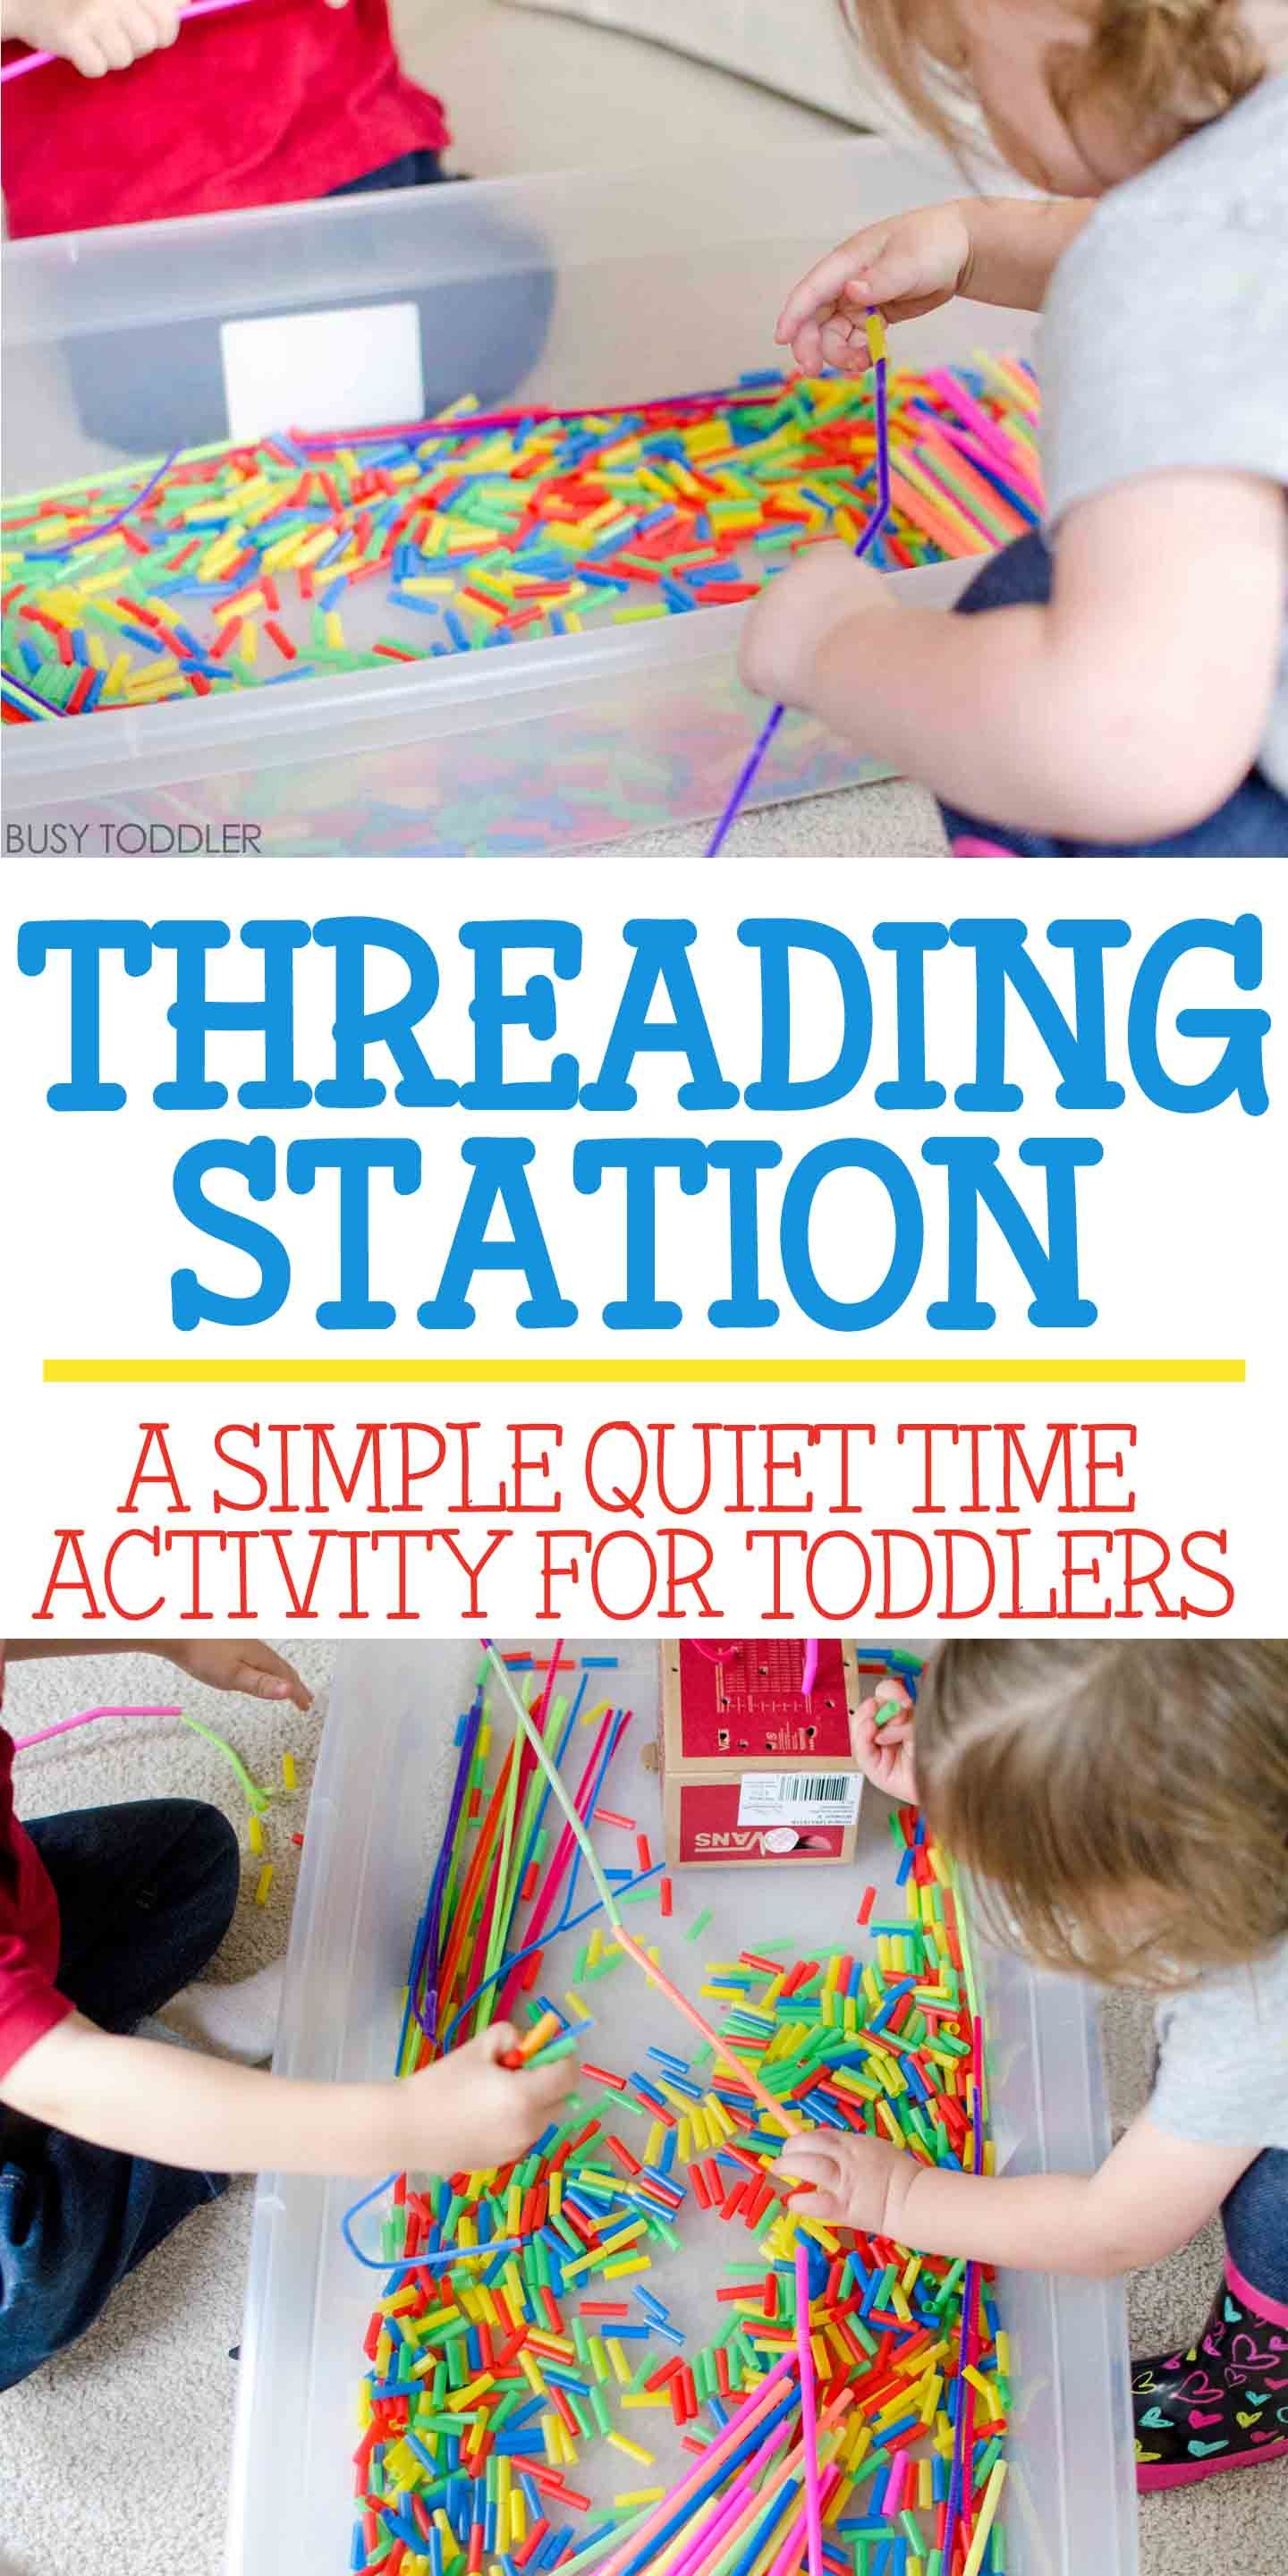 Threading Station Quiet Time Activity